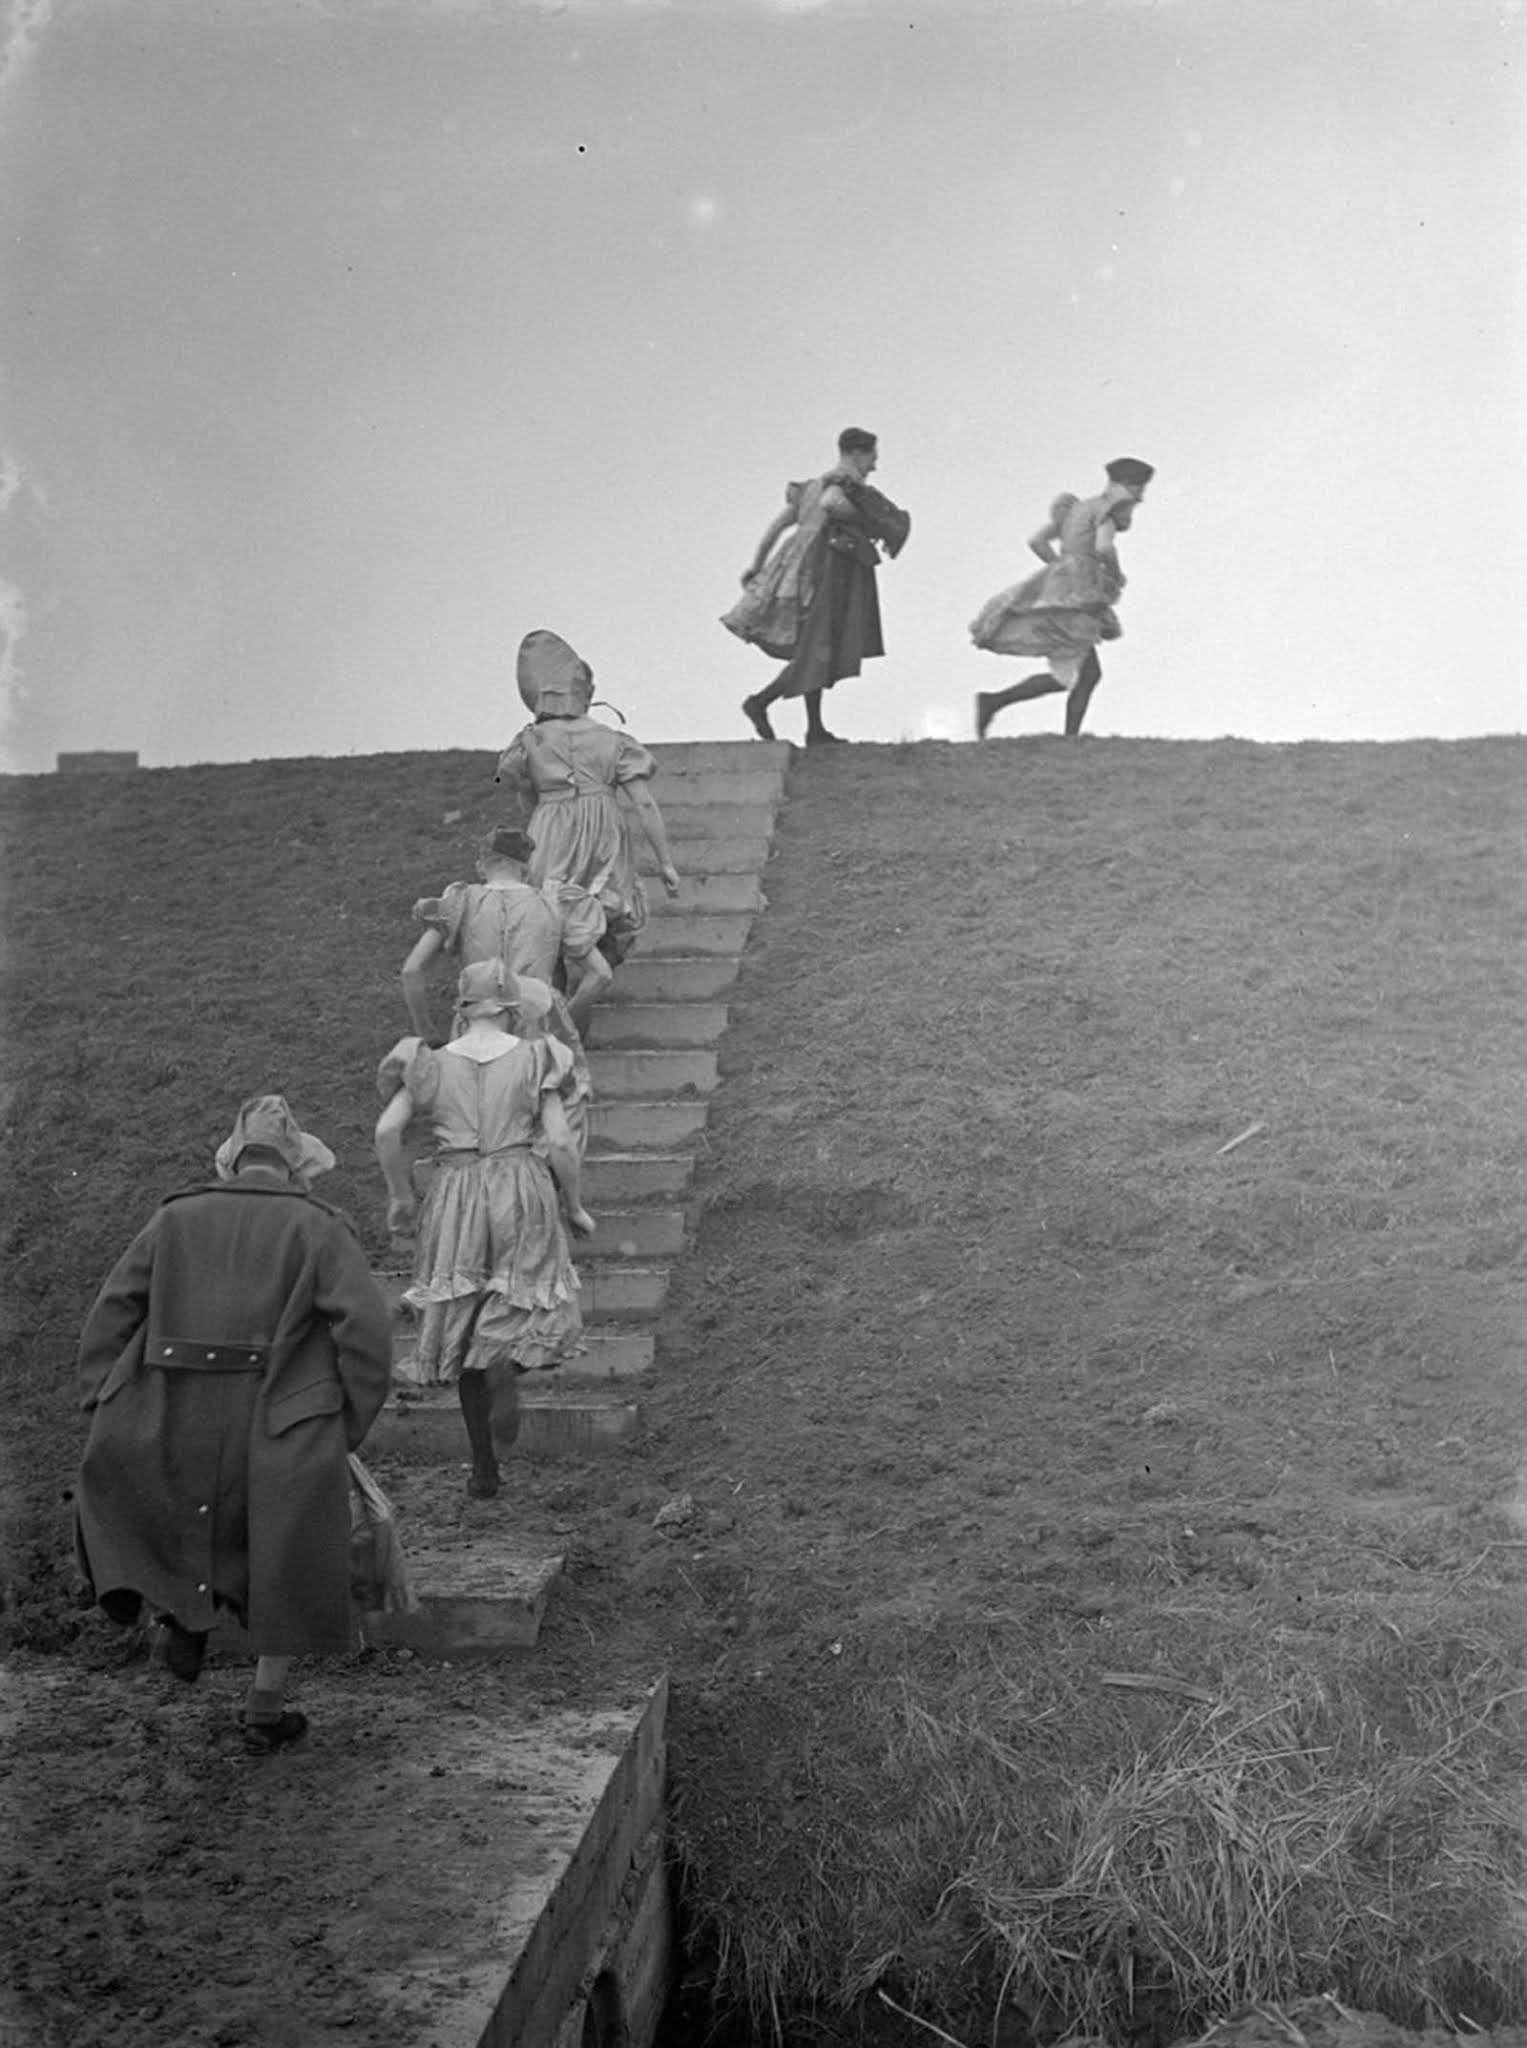 british soldiers manning anti aircraft guns in womens clothes